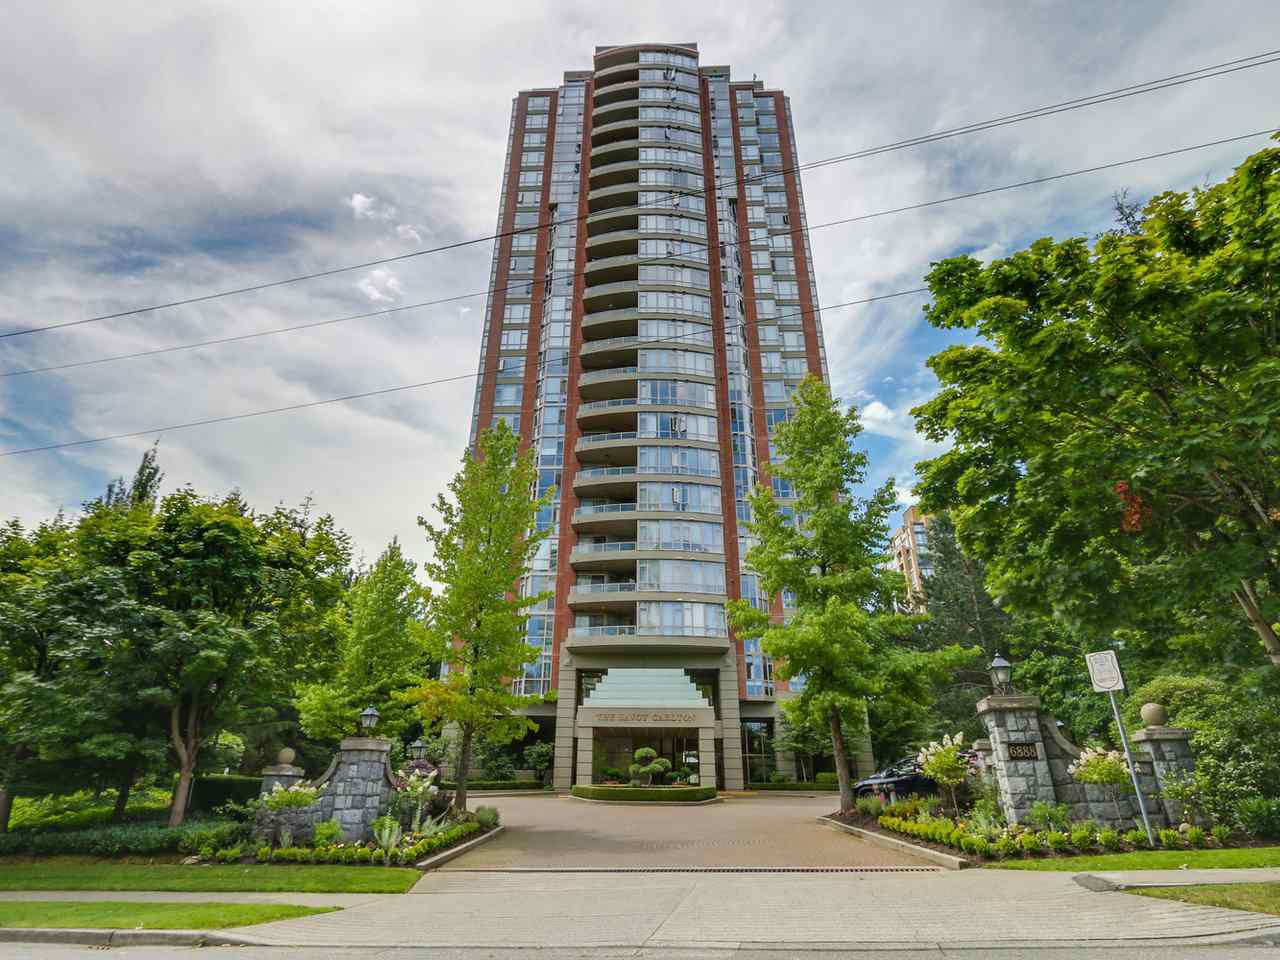 Main Photo: 1005 6888 STATION HILL Drive in Burnaby: South Slope Condo for sale (Burnaby South)  : MLS®# R2125491